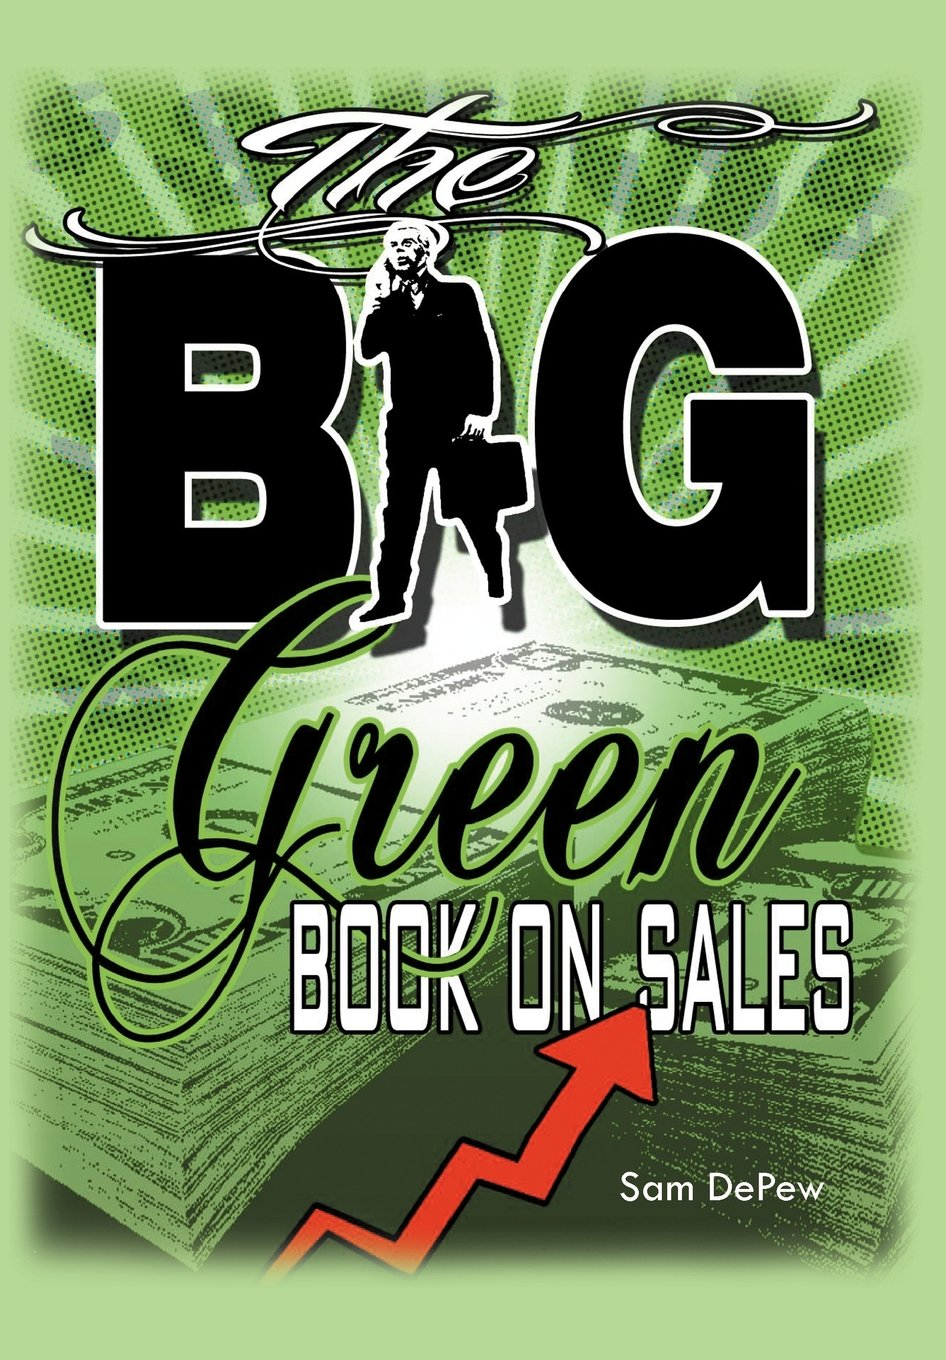 The BIG Green Book On Sales ebook